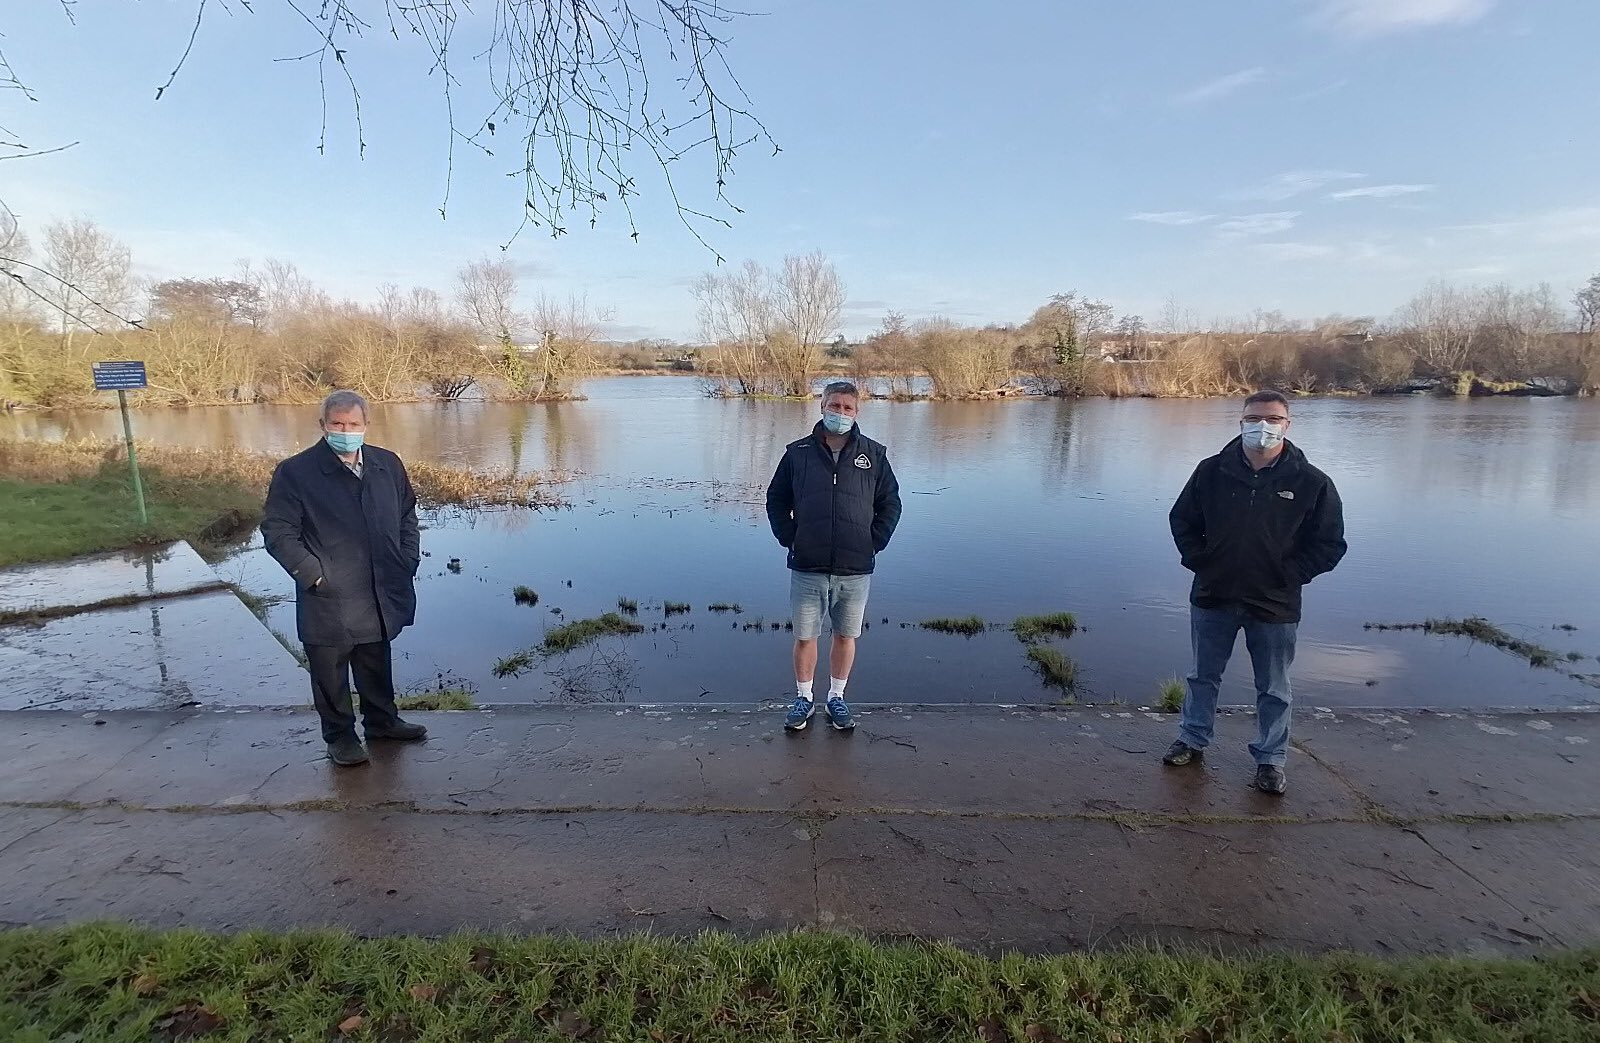 Corbally Baths - Pictured at the Baths are Deputy Kieran O'Donnell, Mark Dempsey and John Ryan of Limerick Narwhals.